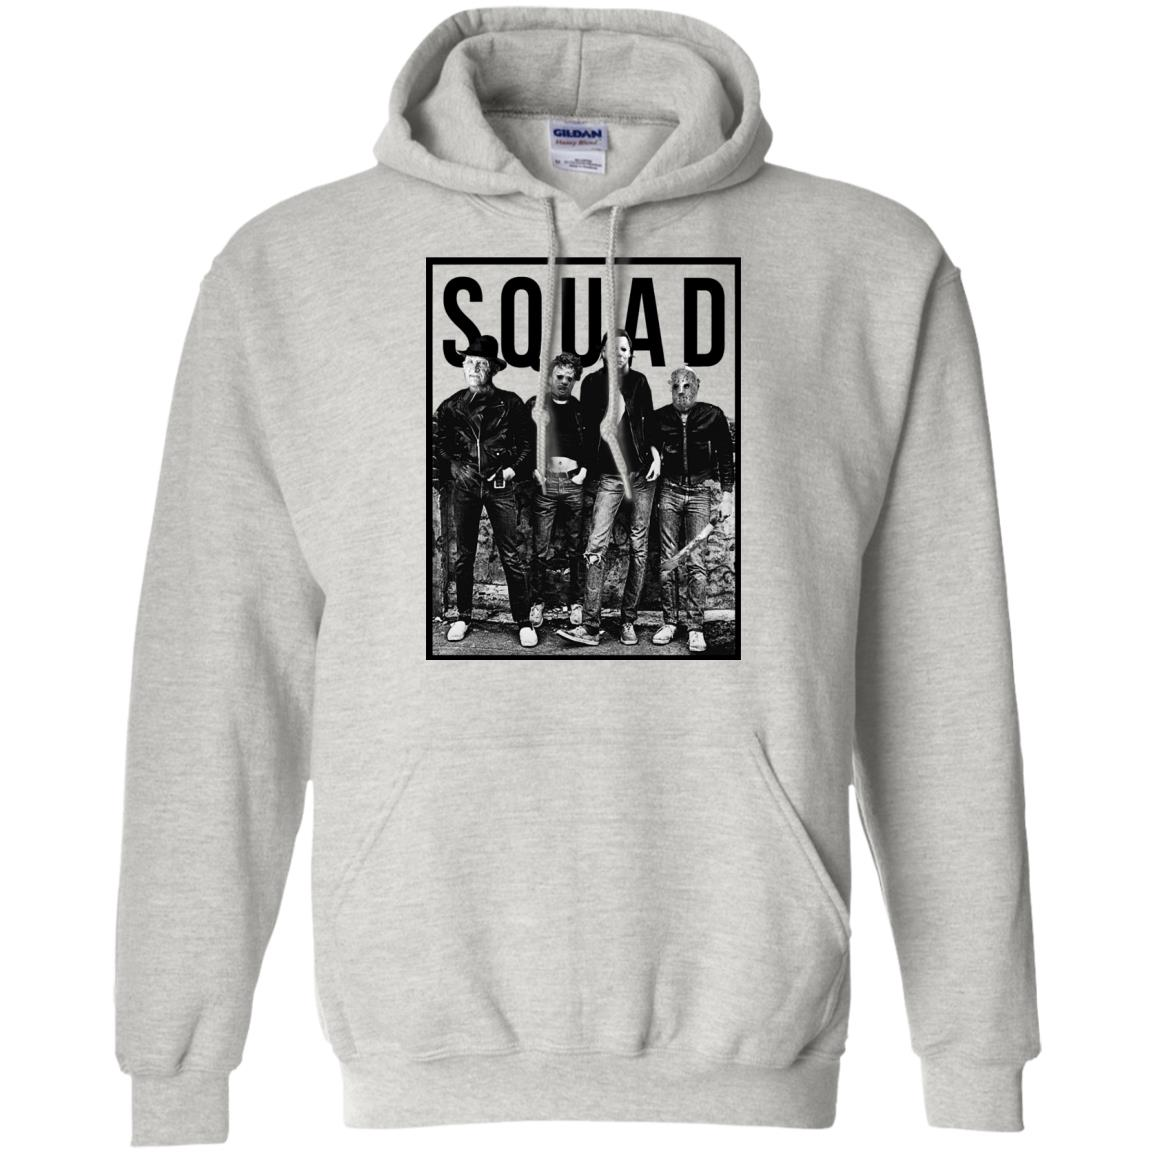 freddy jason michael myers and leatherface squad shirt, hoodie, long